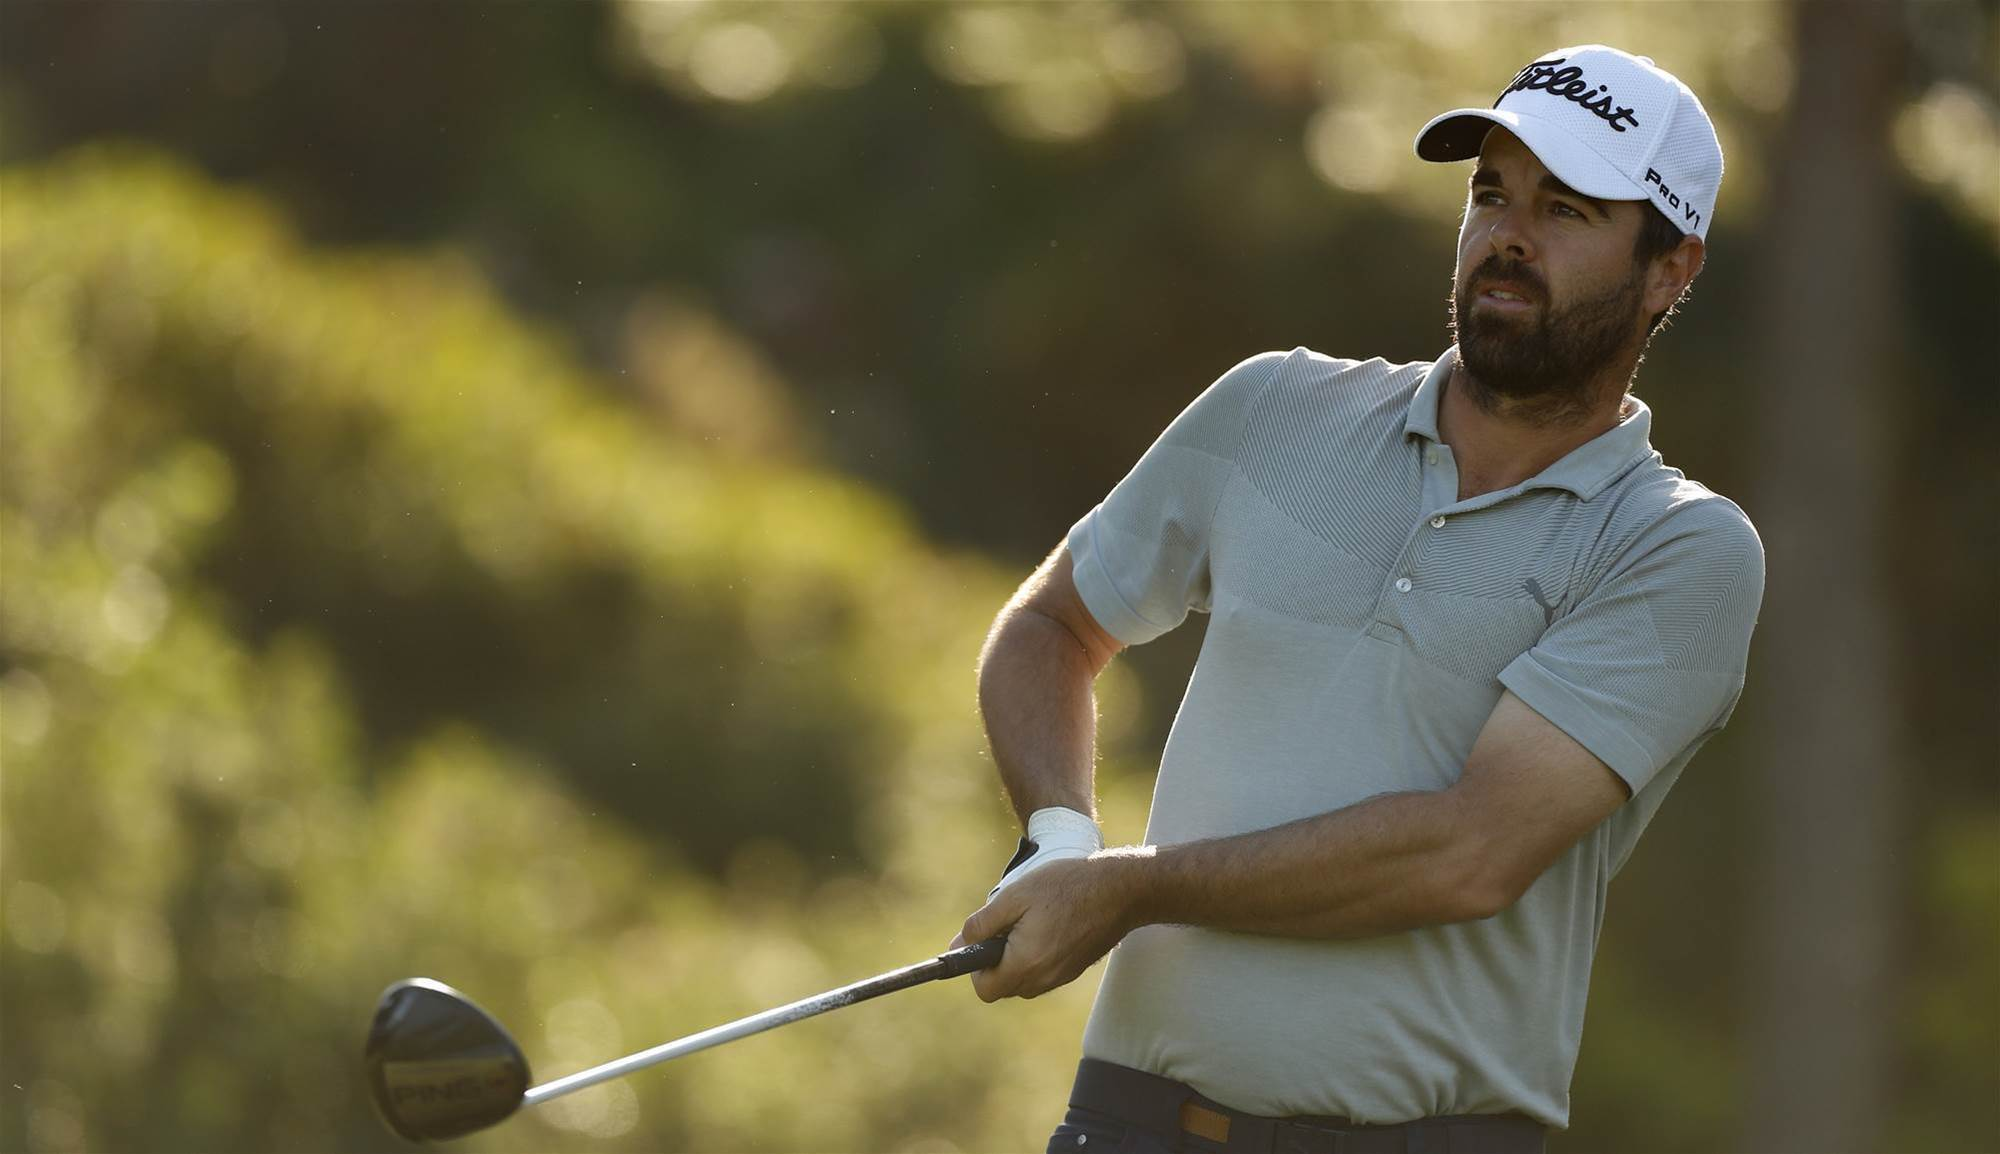 Aussies earn European Tour cards